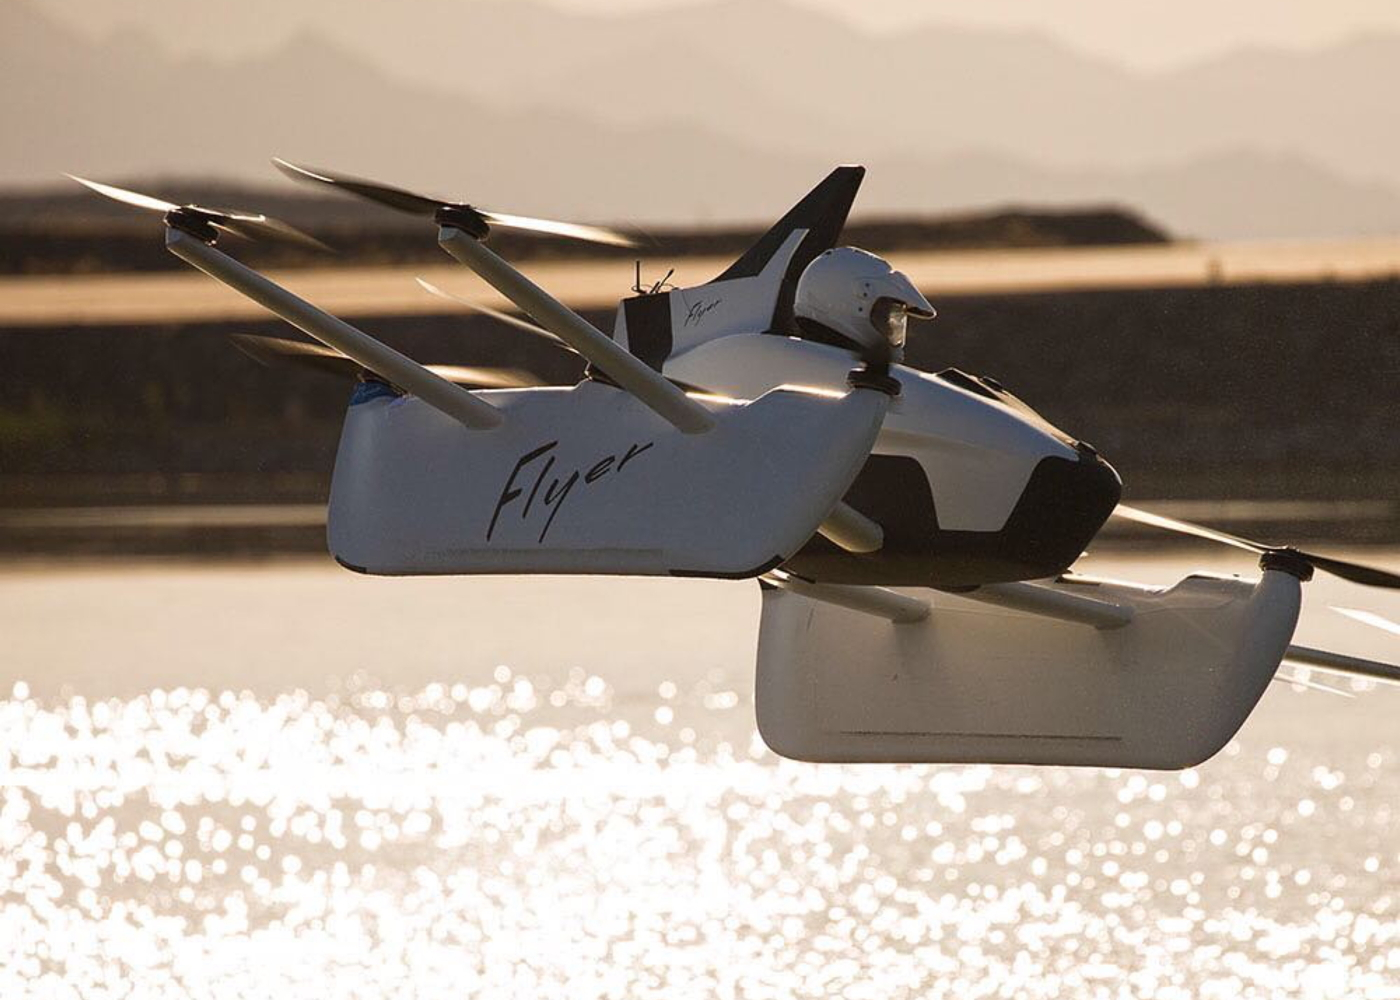 Kitty Hawk Flyer eVTOL